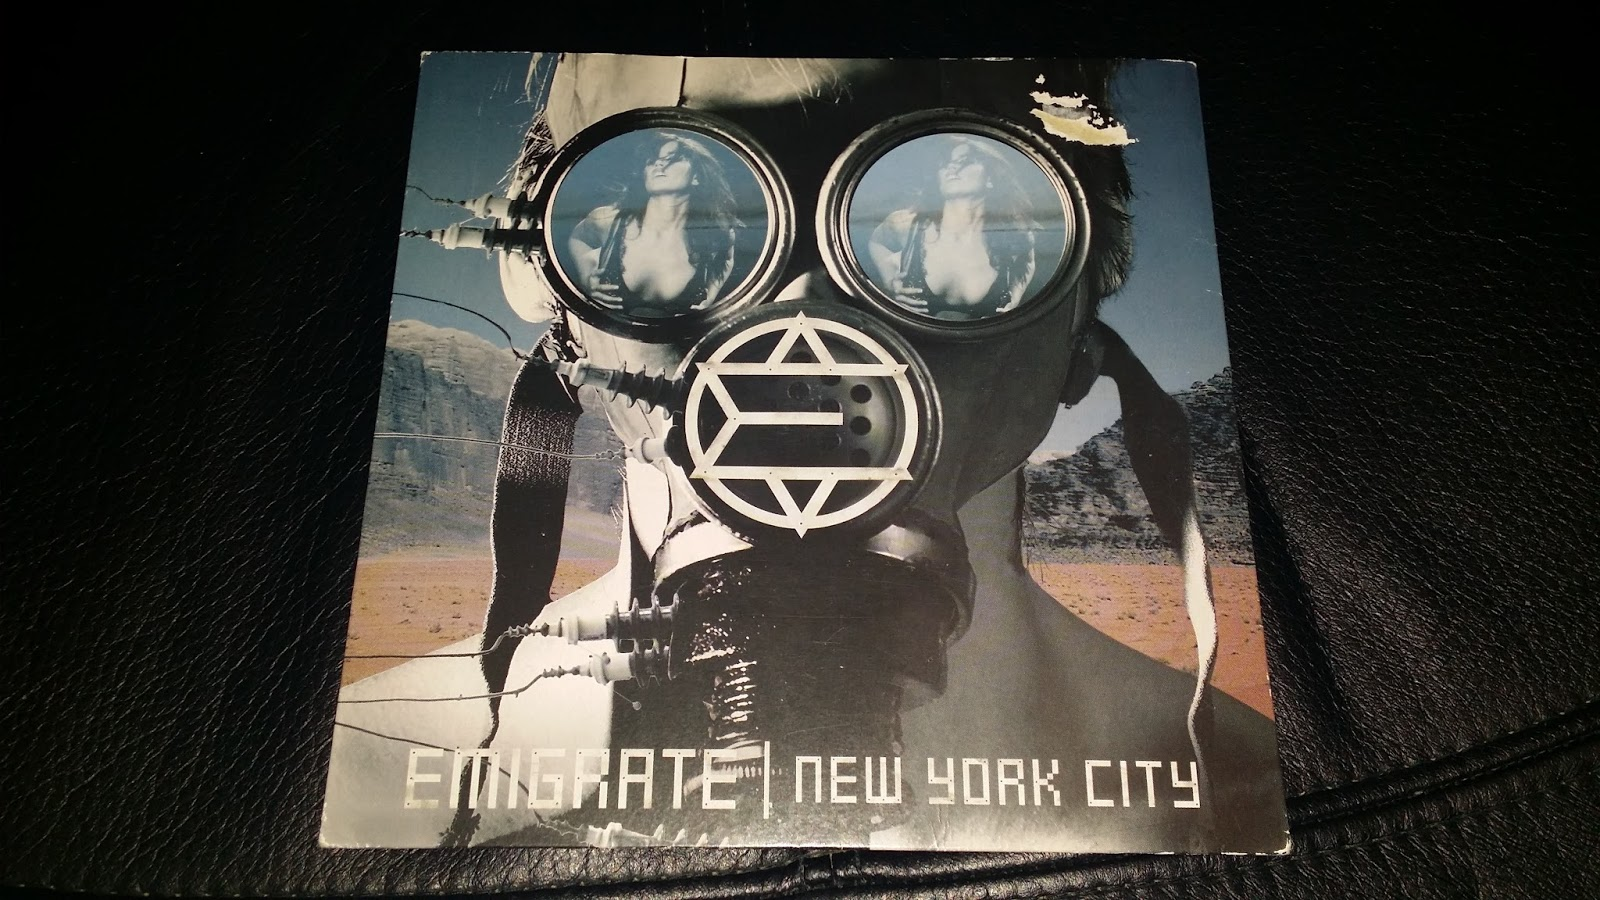 rammstein welcome to the rammstein collection by rc emigrate new york city 7 39 uk vinyl. Black Bedroom Furniture Sets. Home Design Ideas